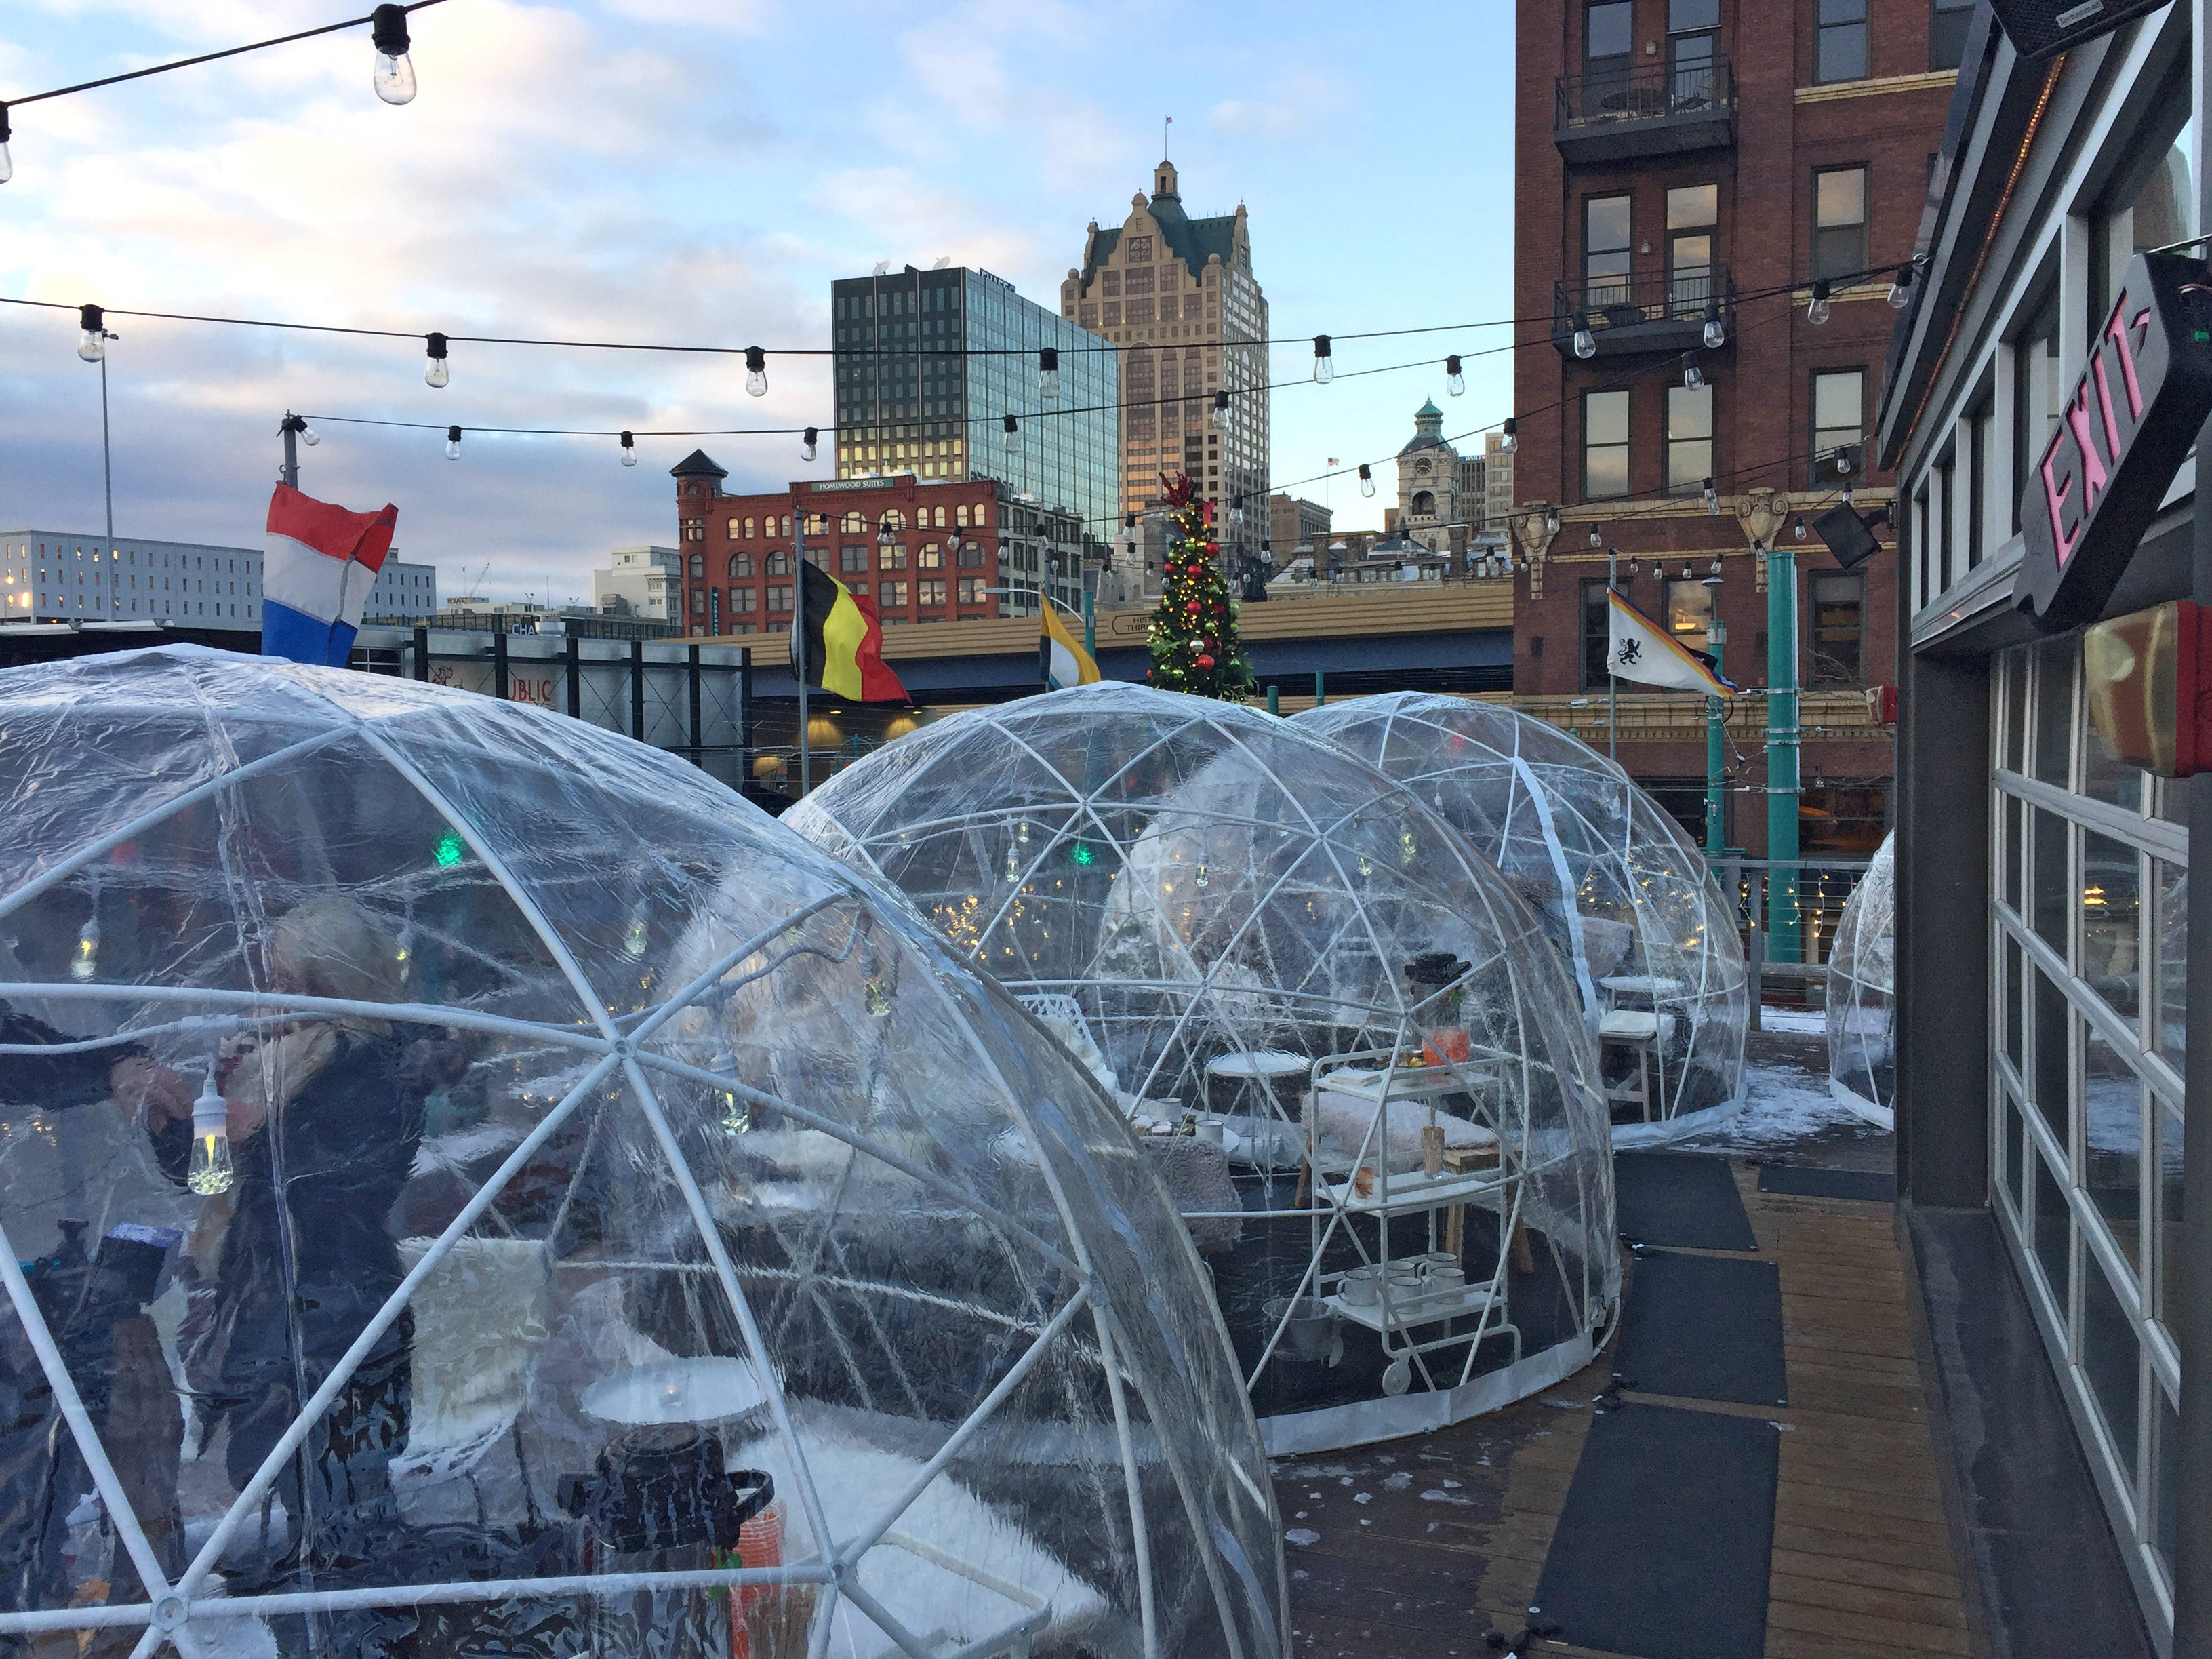 Café Benelux offers patrons six domes, each seating eight. Reservations are made in blocks of 90-minutes. The domes are kept warm with space heaters.